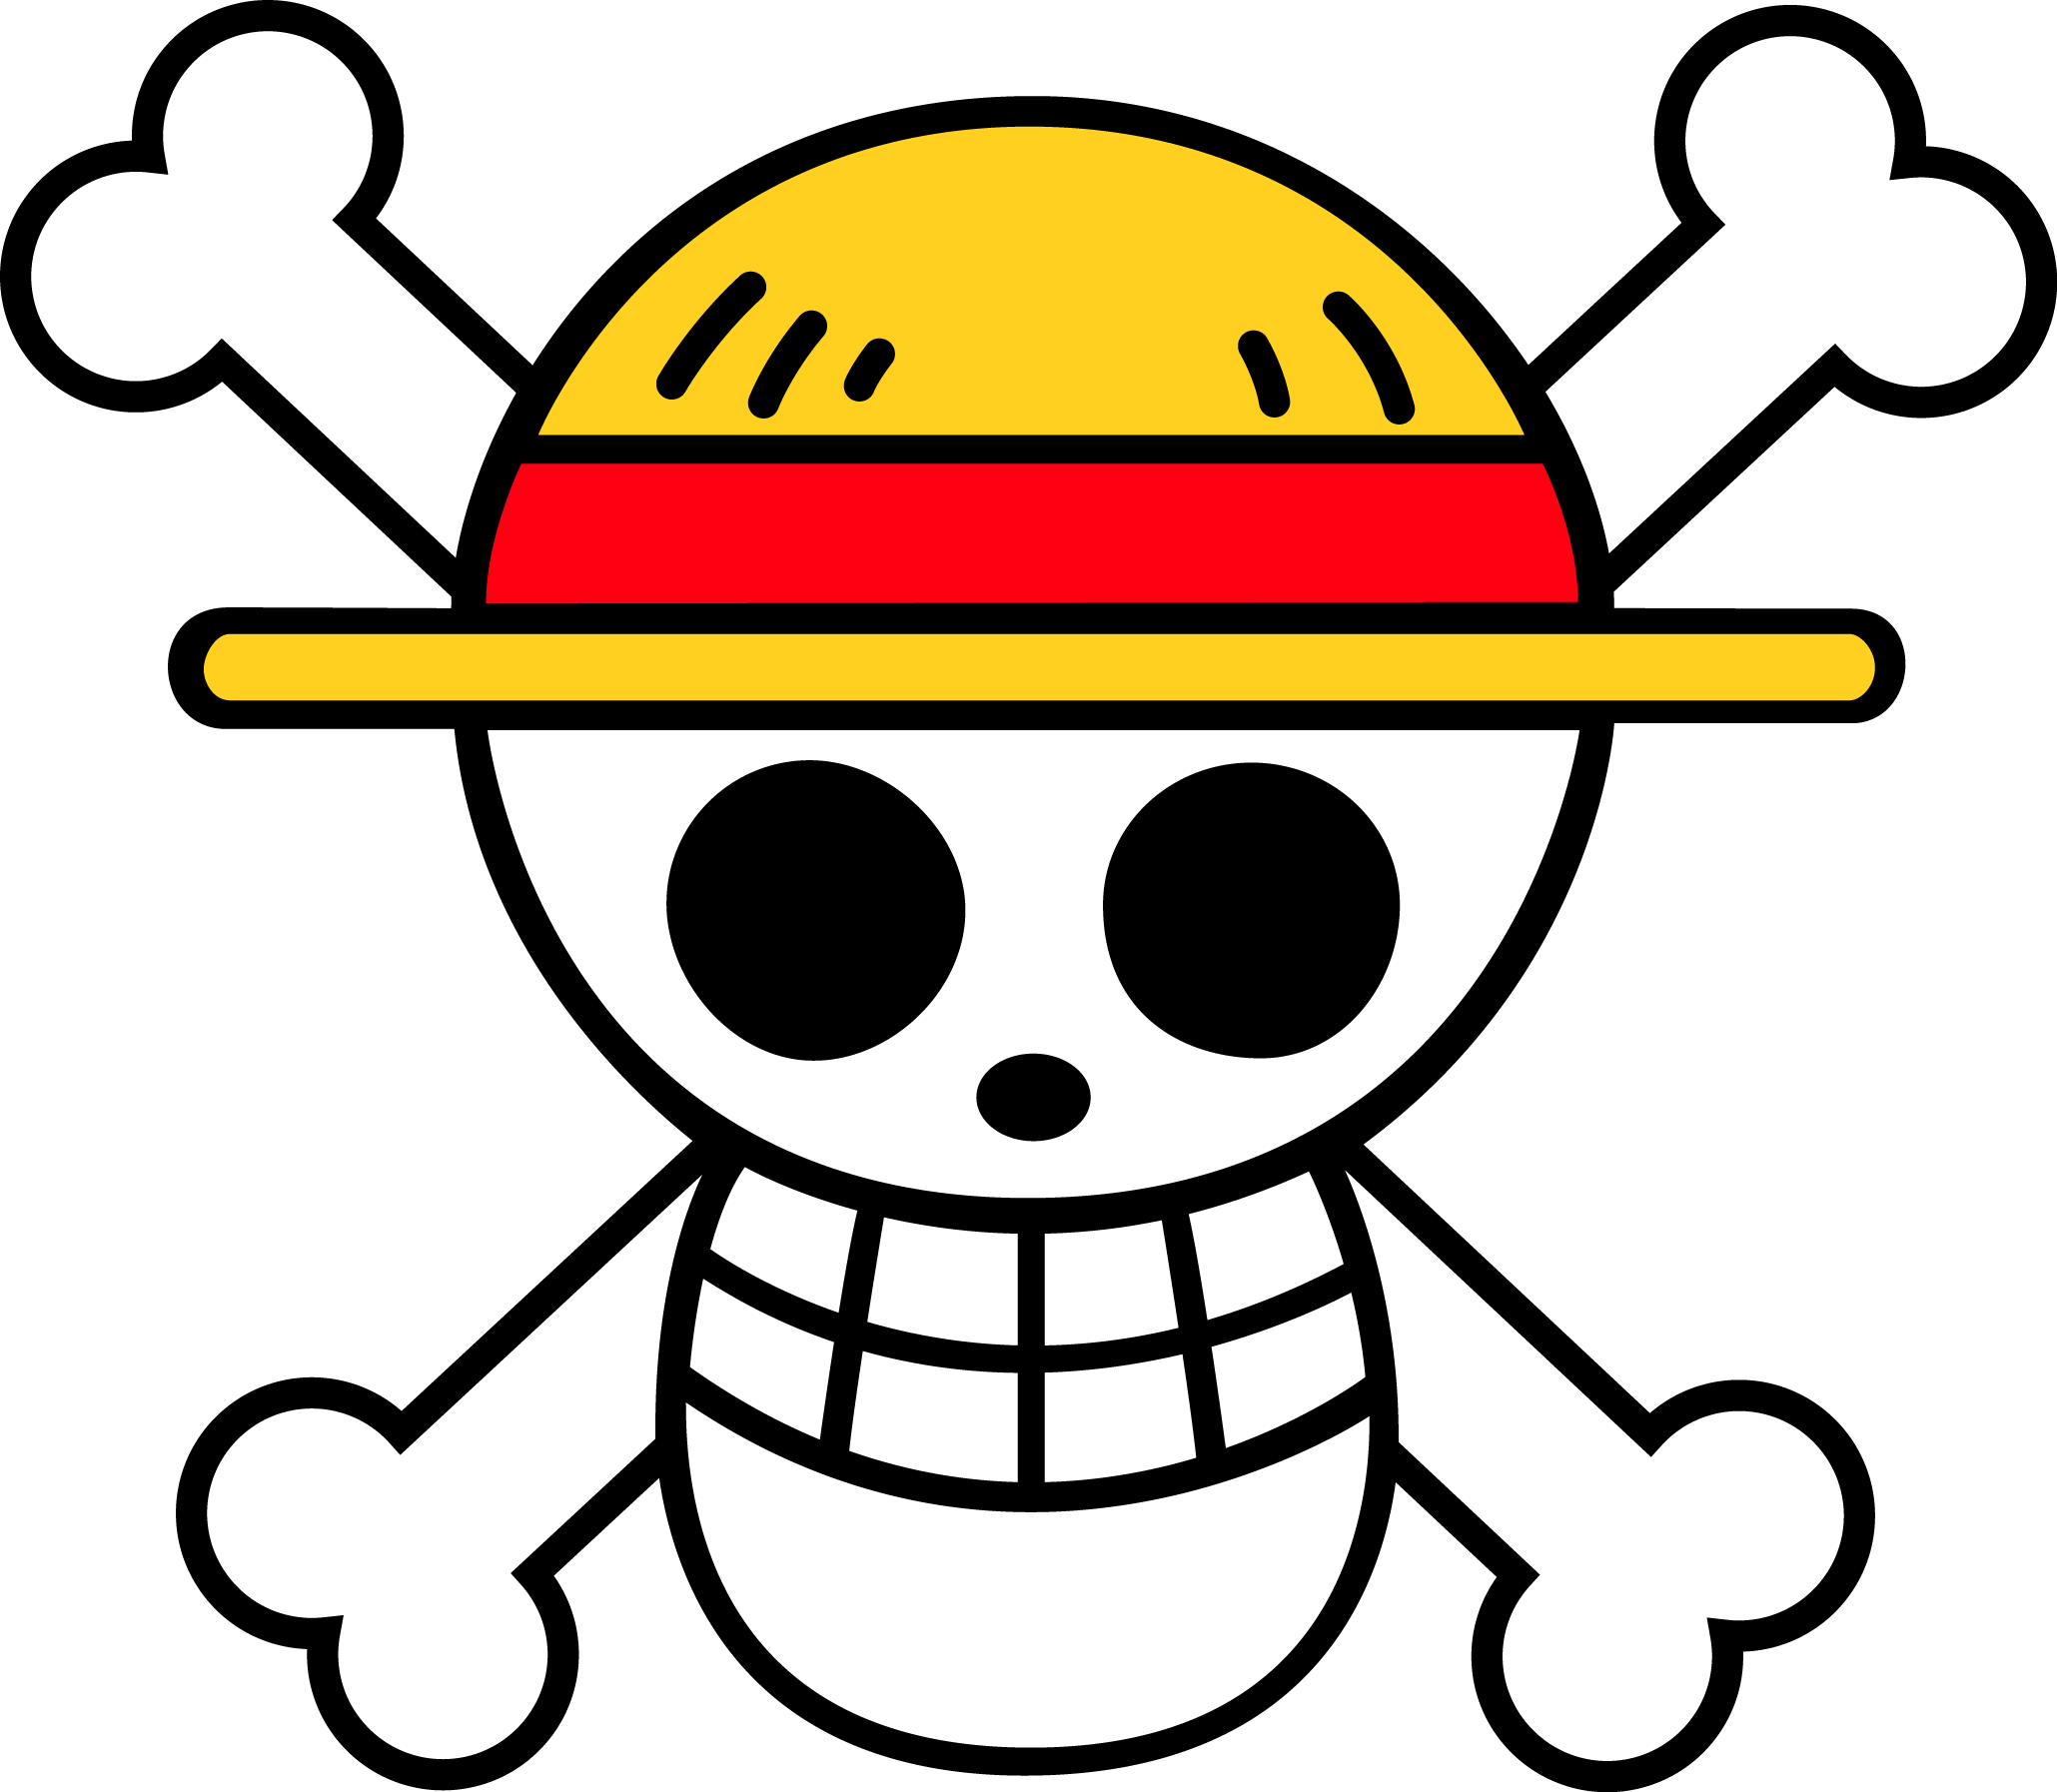 Google themes anime one piece - Nice Large Version Of Luffy S Personal Jolly Roger That I Made From The Anime Manga One Piece Made With Illustrator Updated On Feb Luffy S Flag